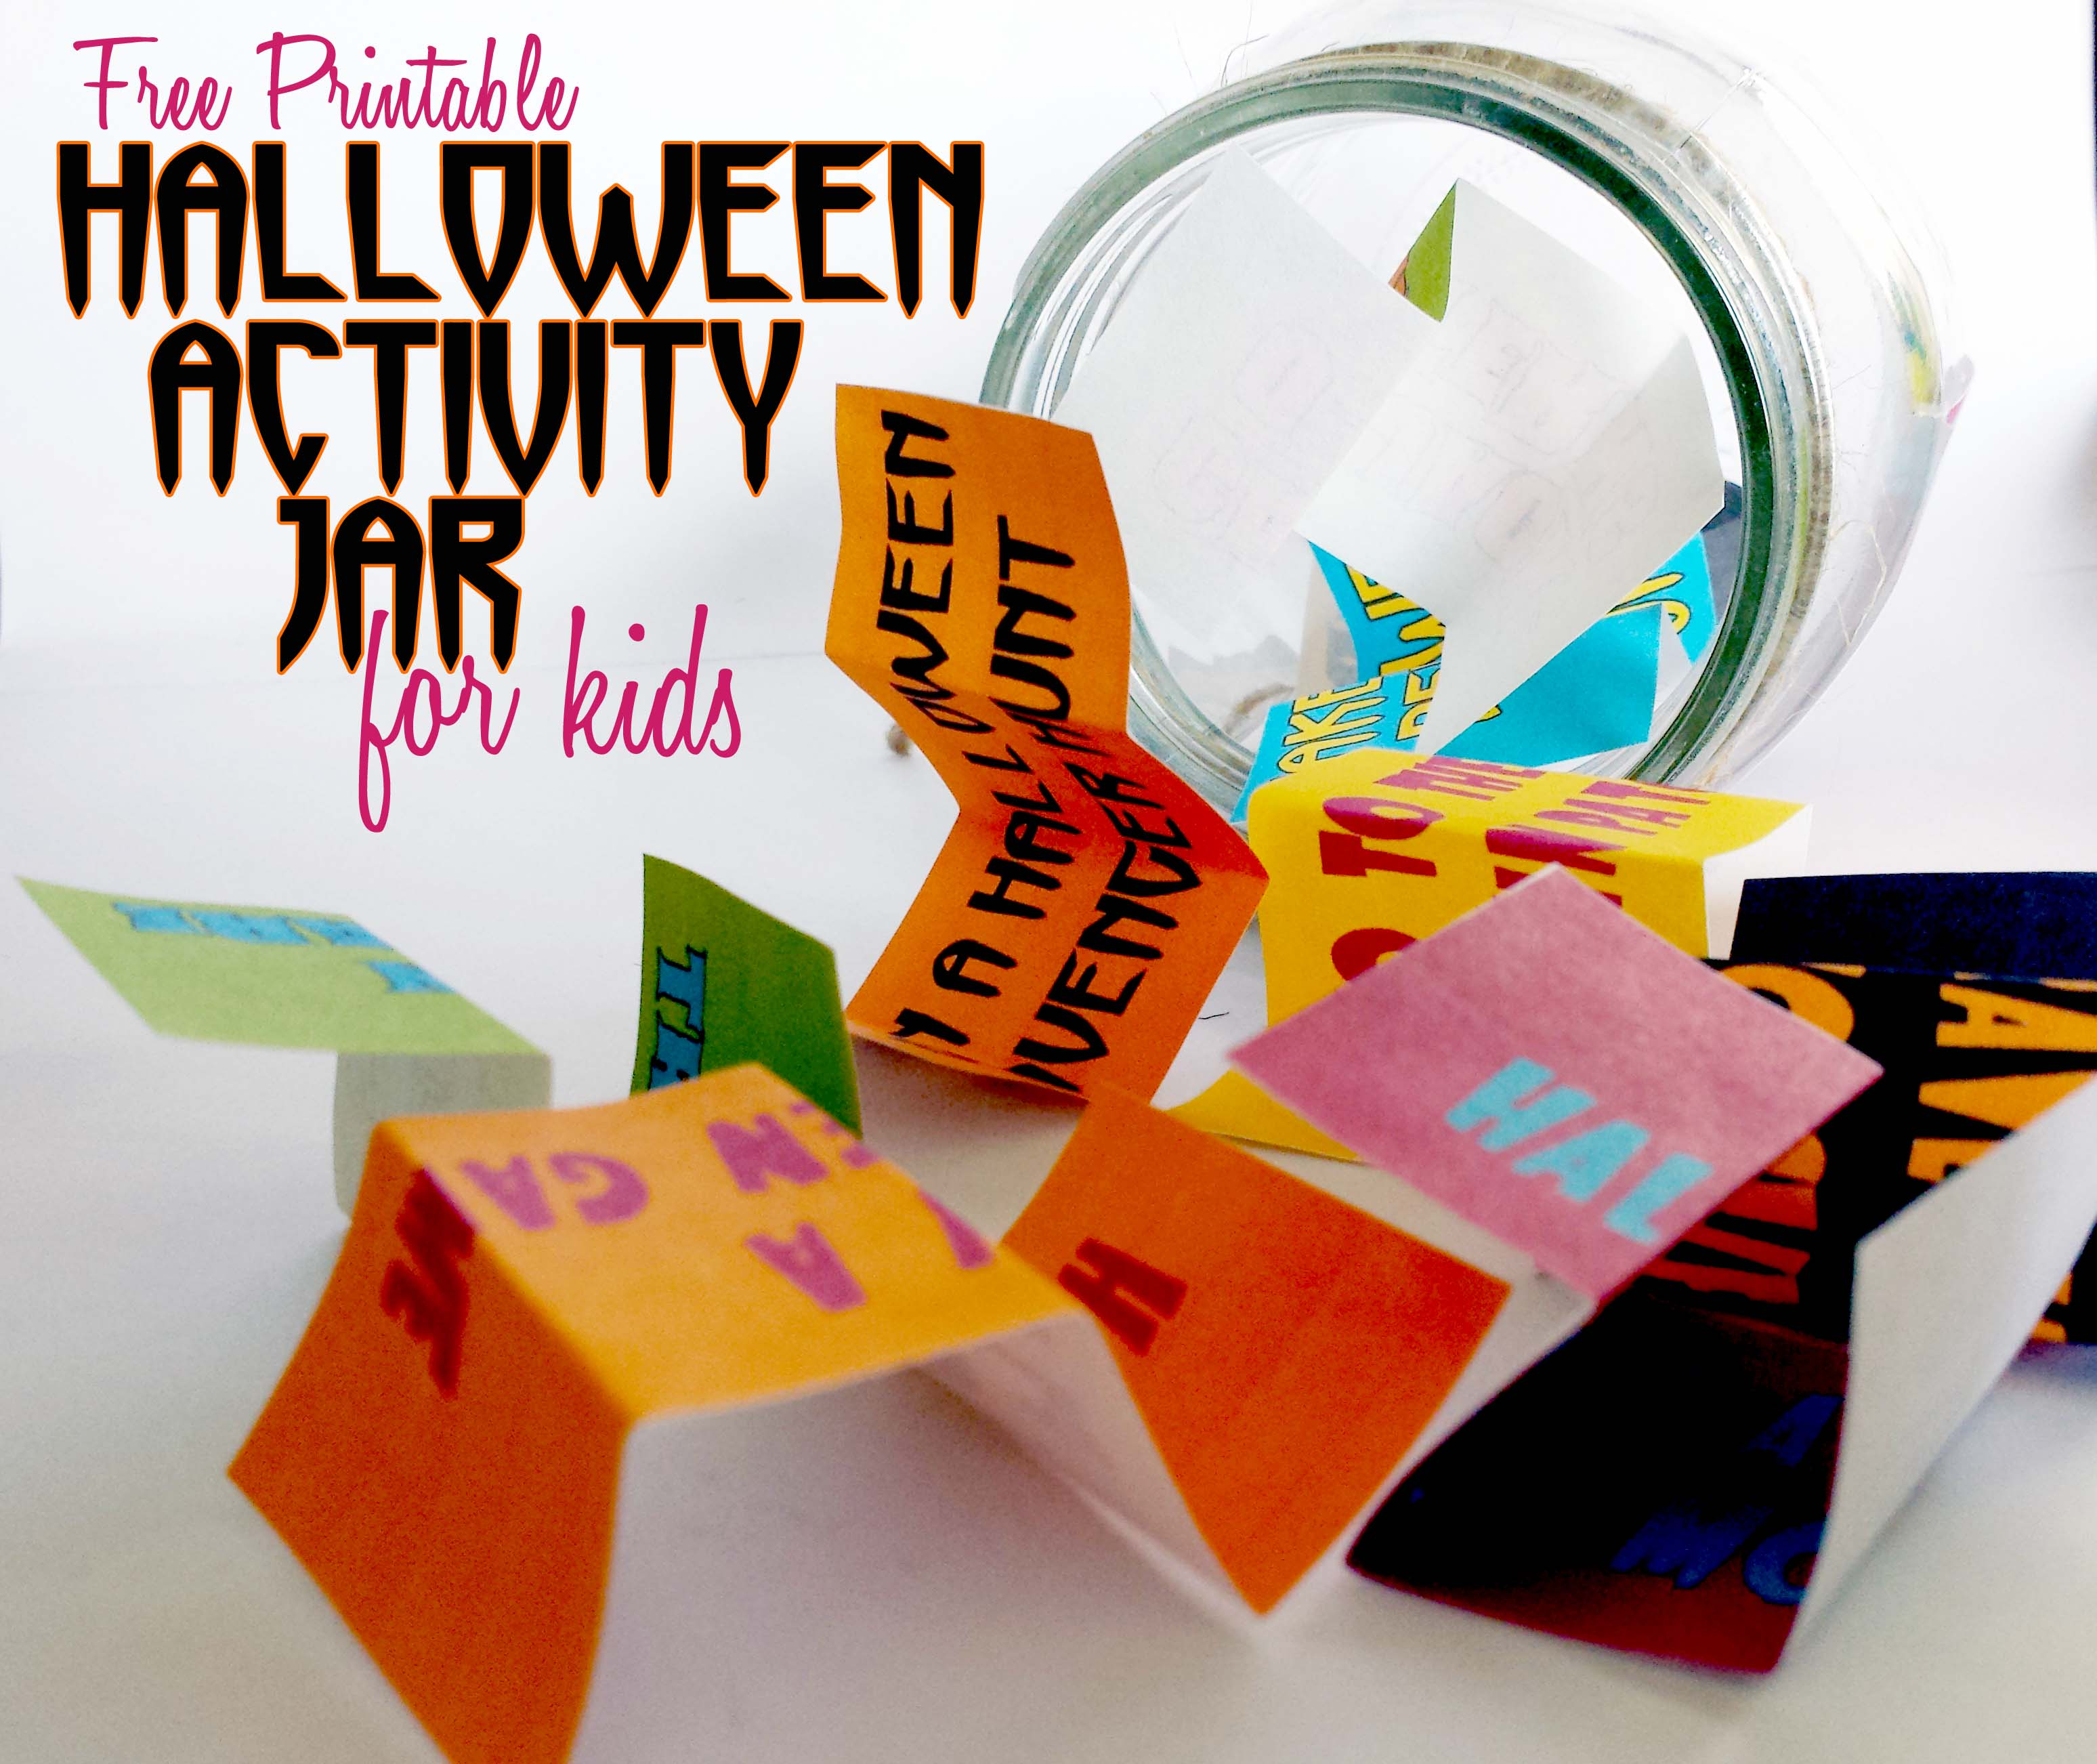 Kids' Halloween Activity Jar